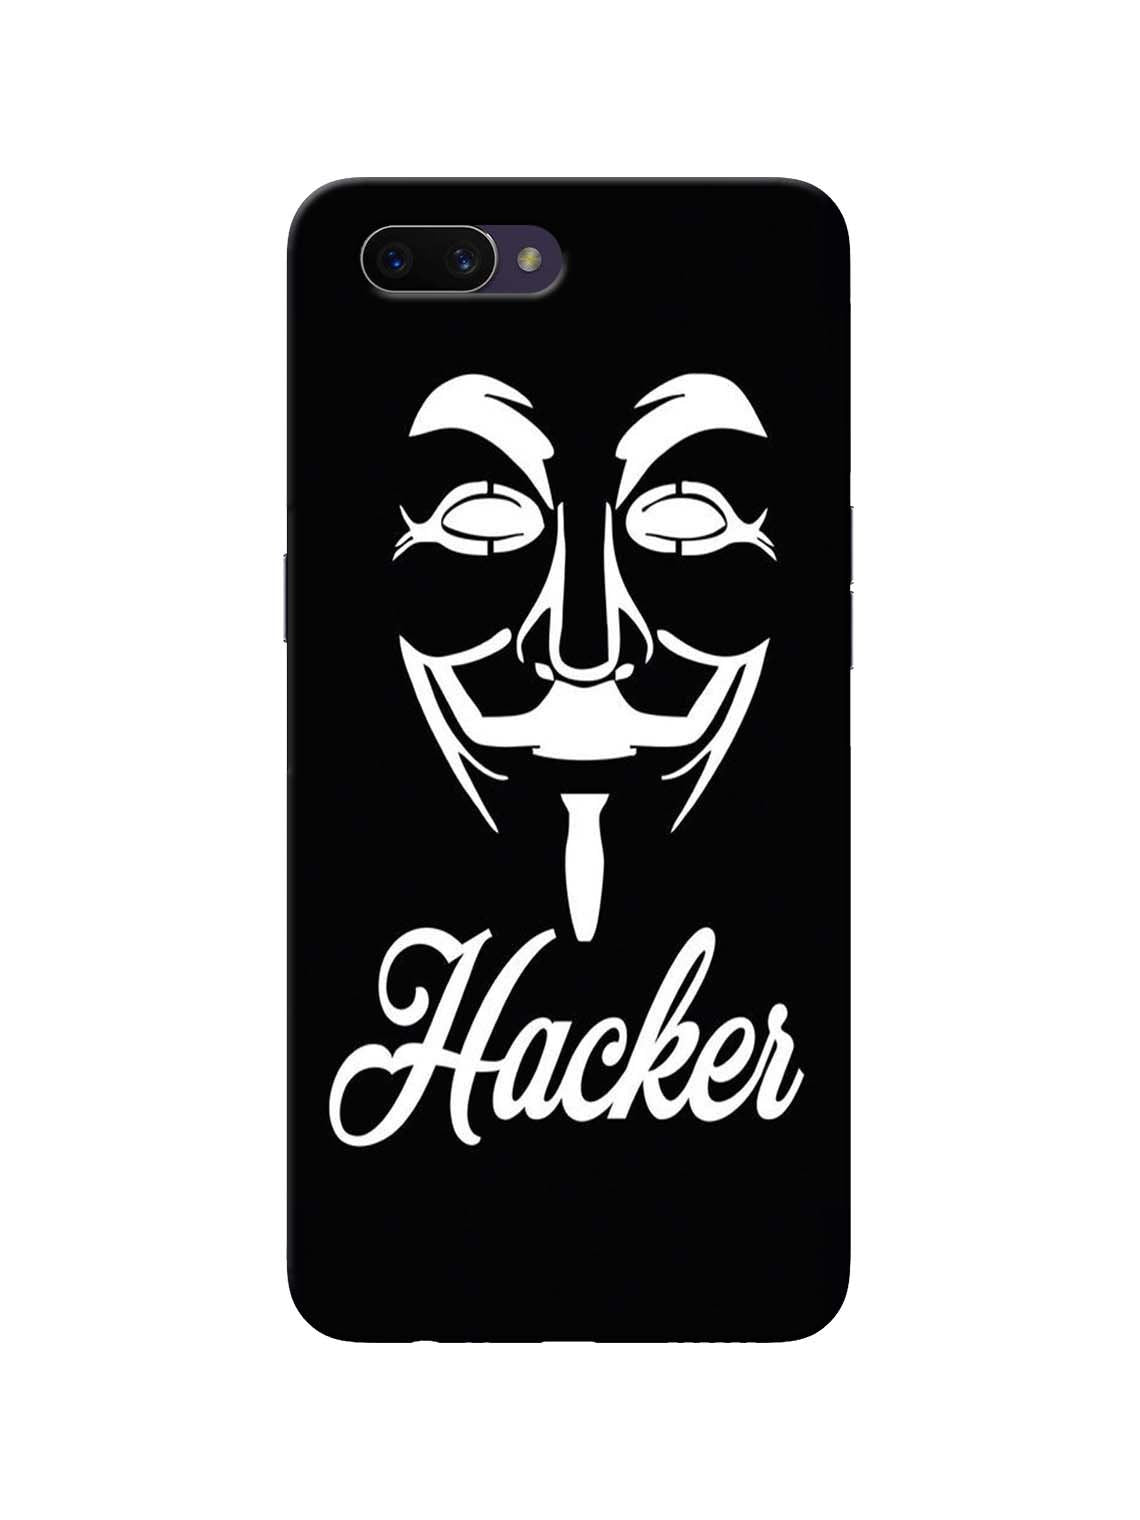 Hacker Printed Mobile Case For Oppo A3s / RealMe C1